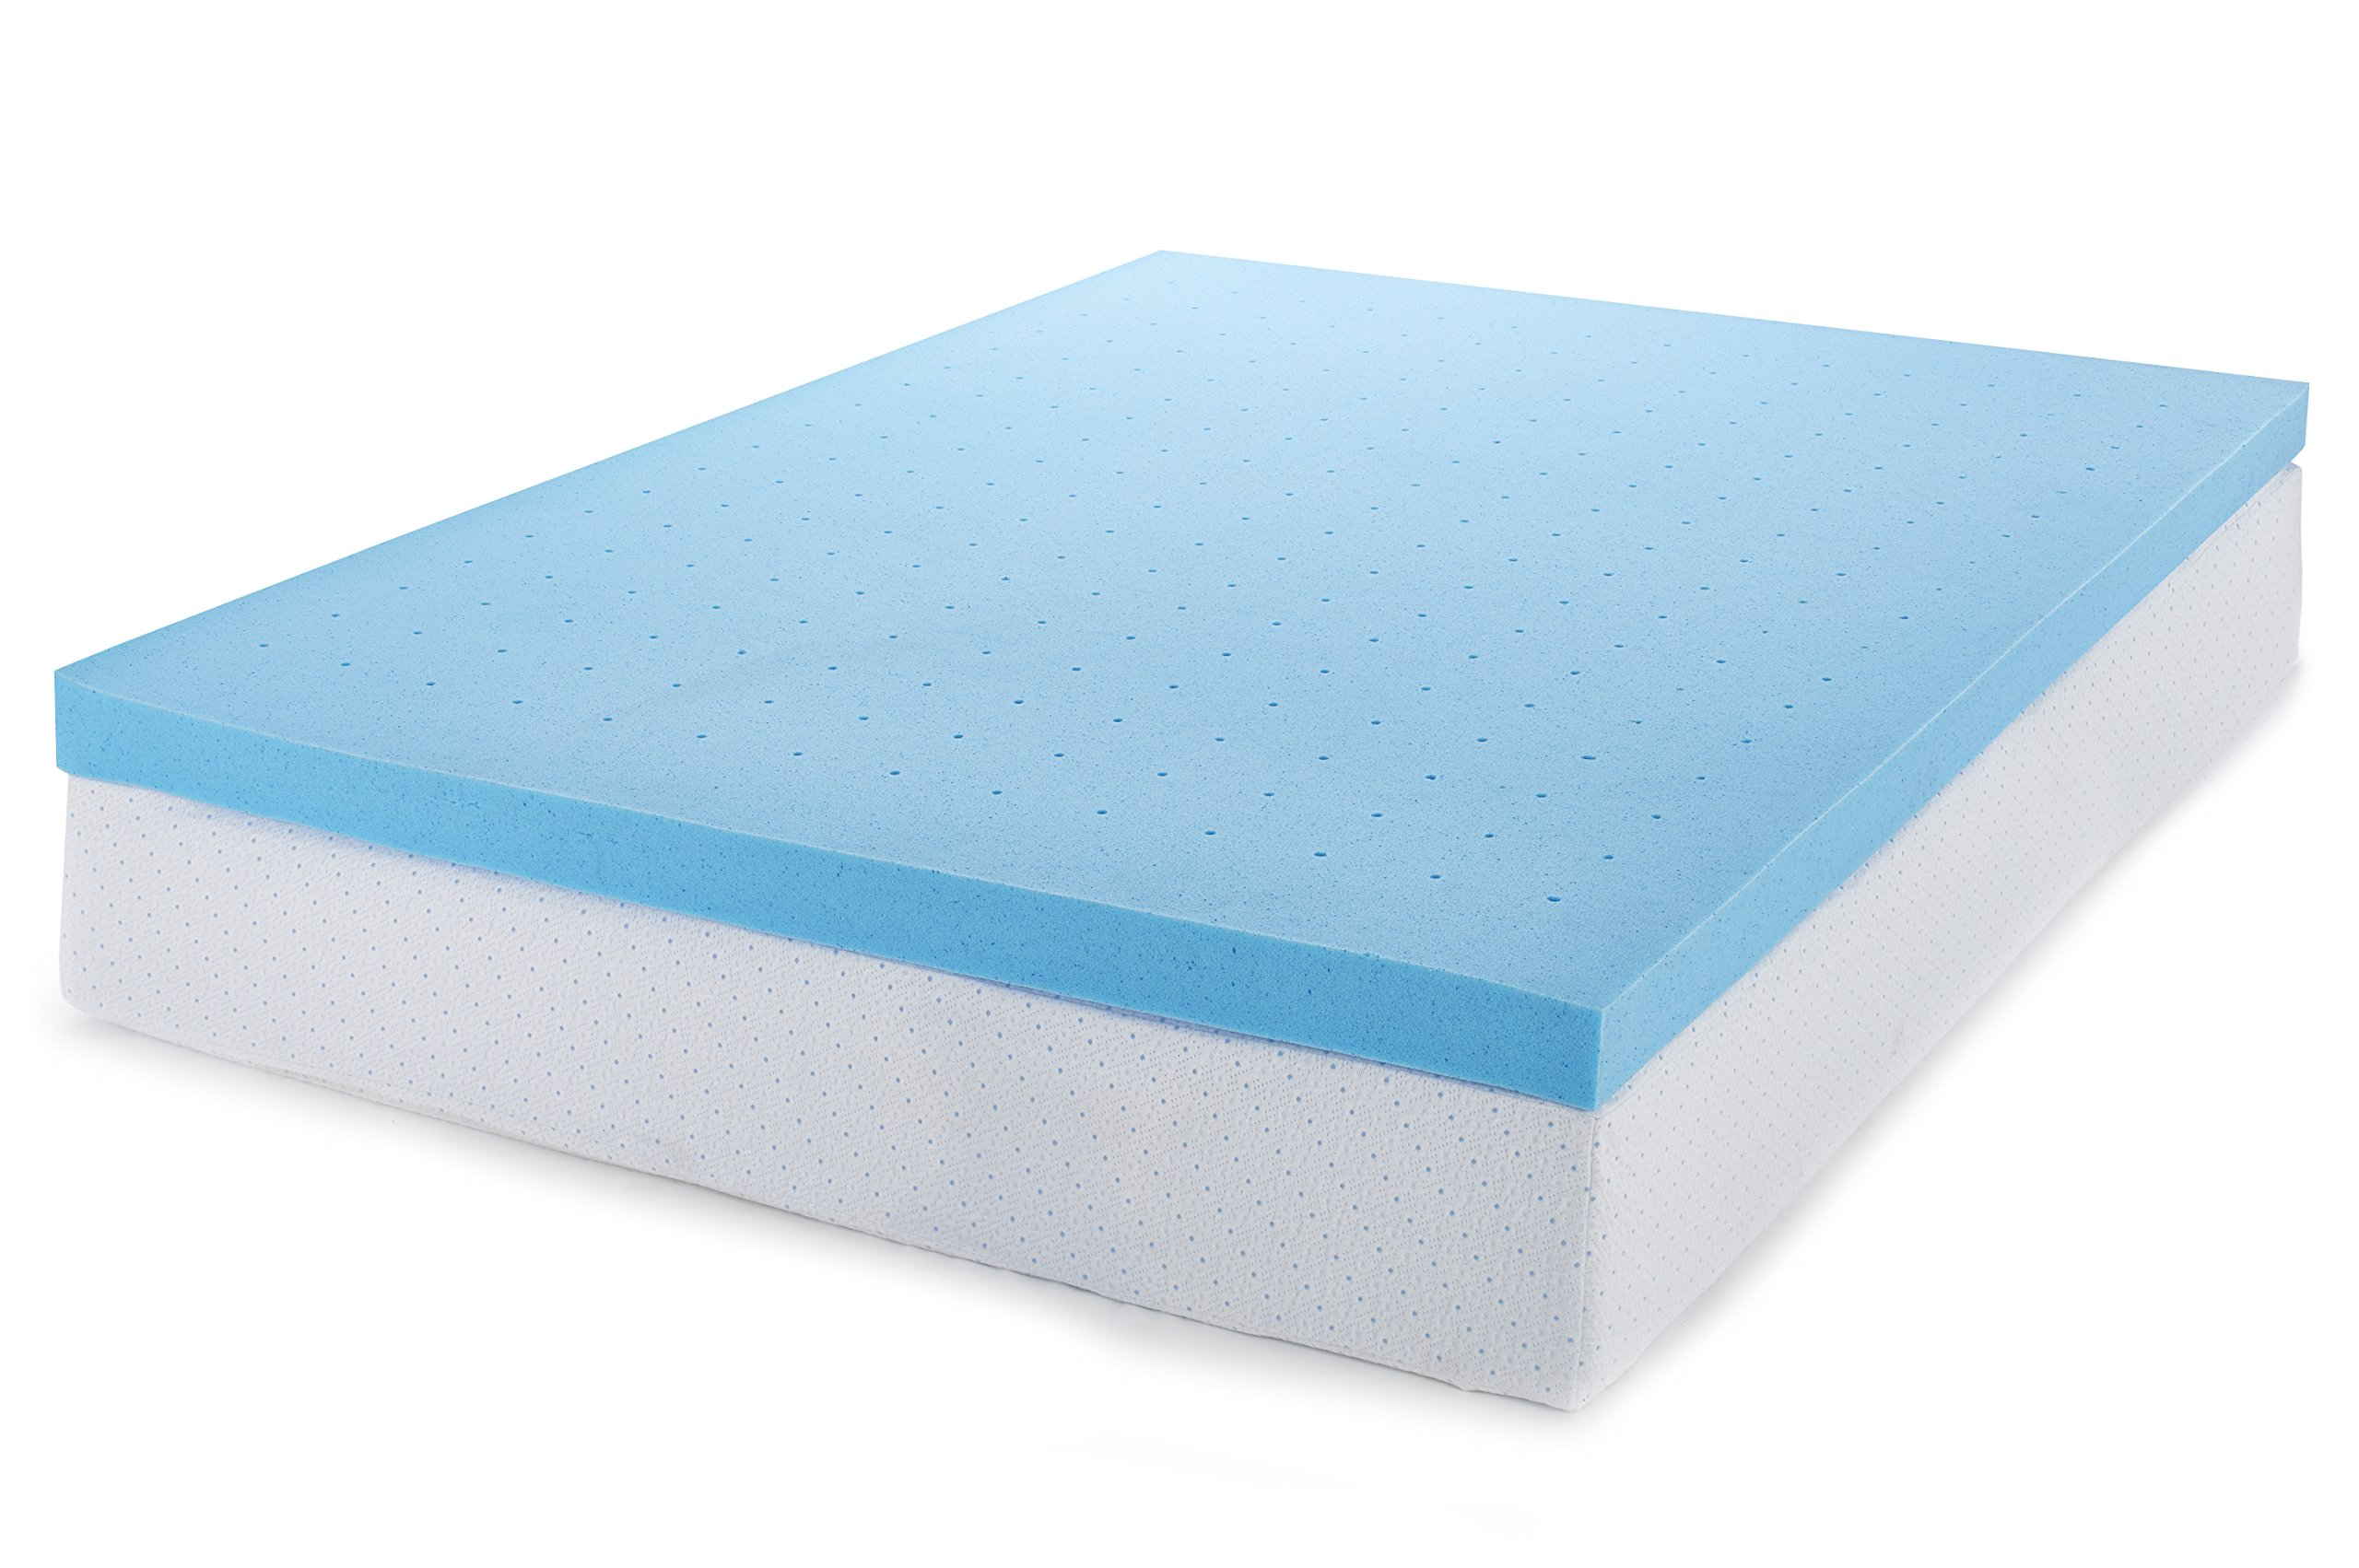 ViscoSoft 3 Inch Memory Foam Mattress Topper Twin | Select High Density Ventilated Mattress Pad